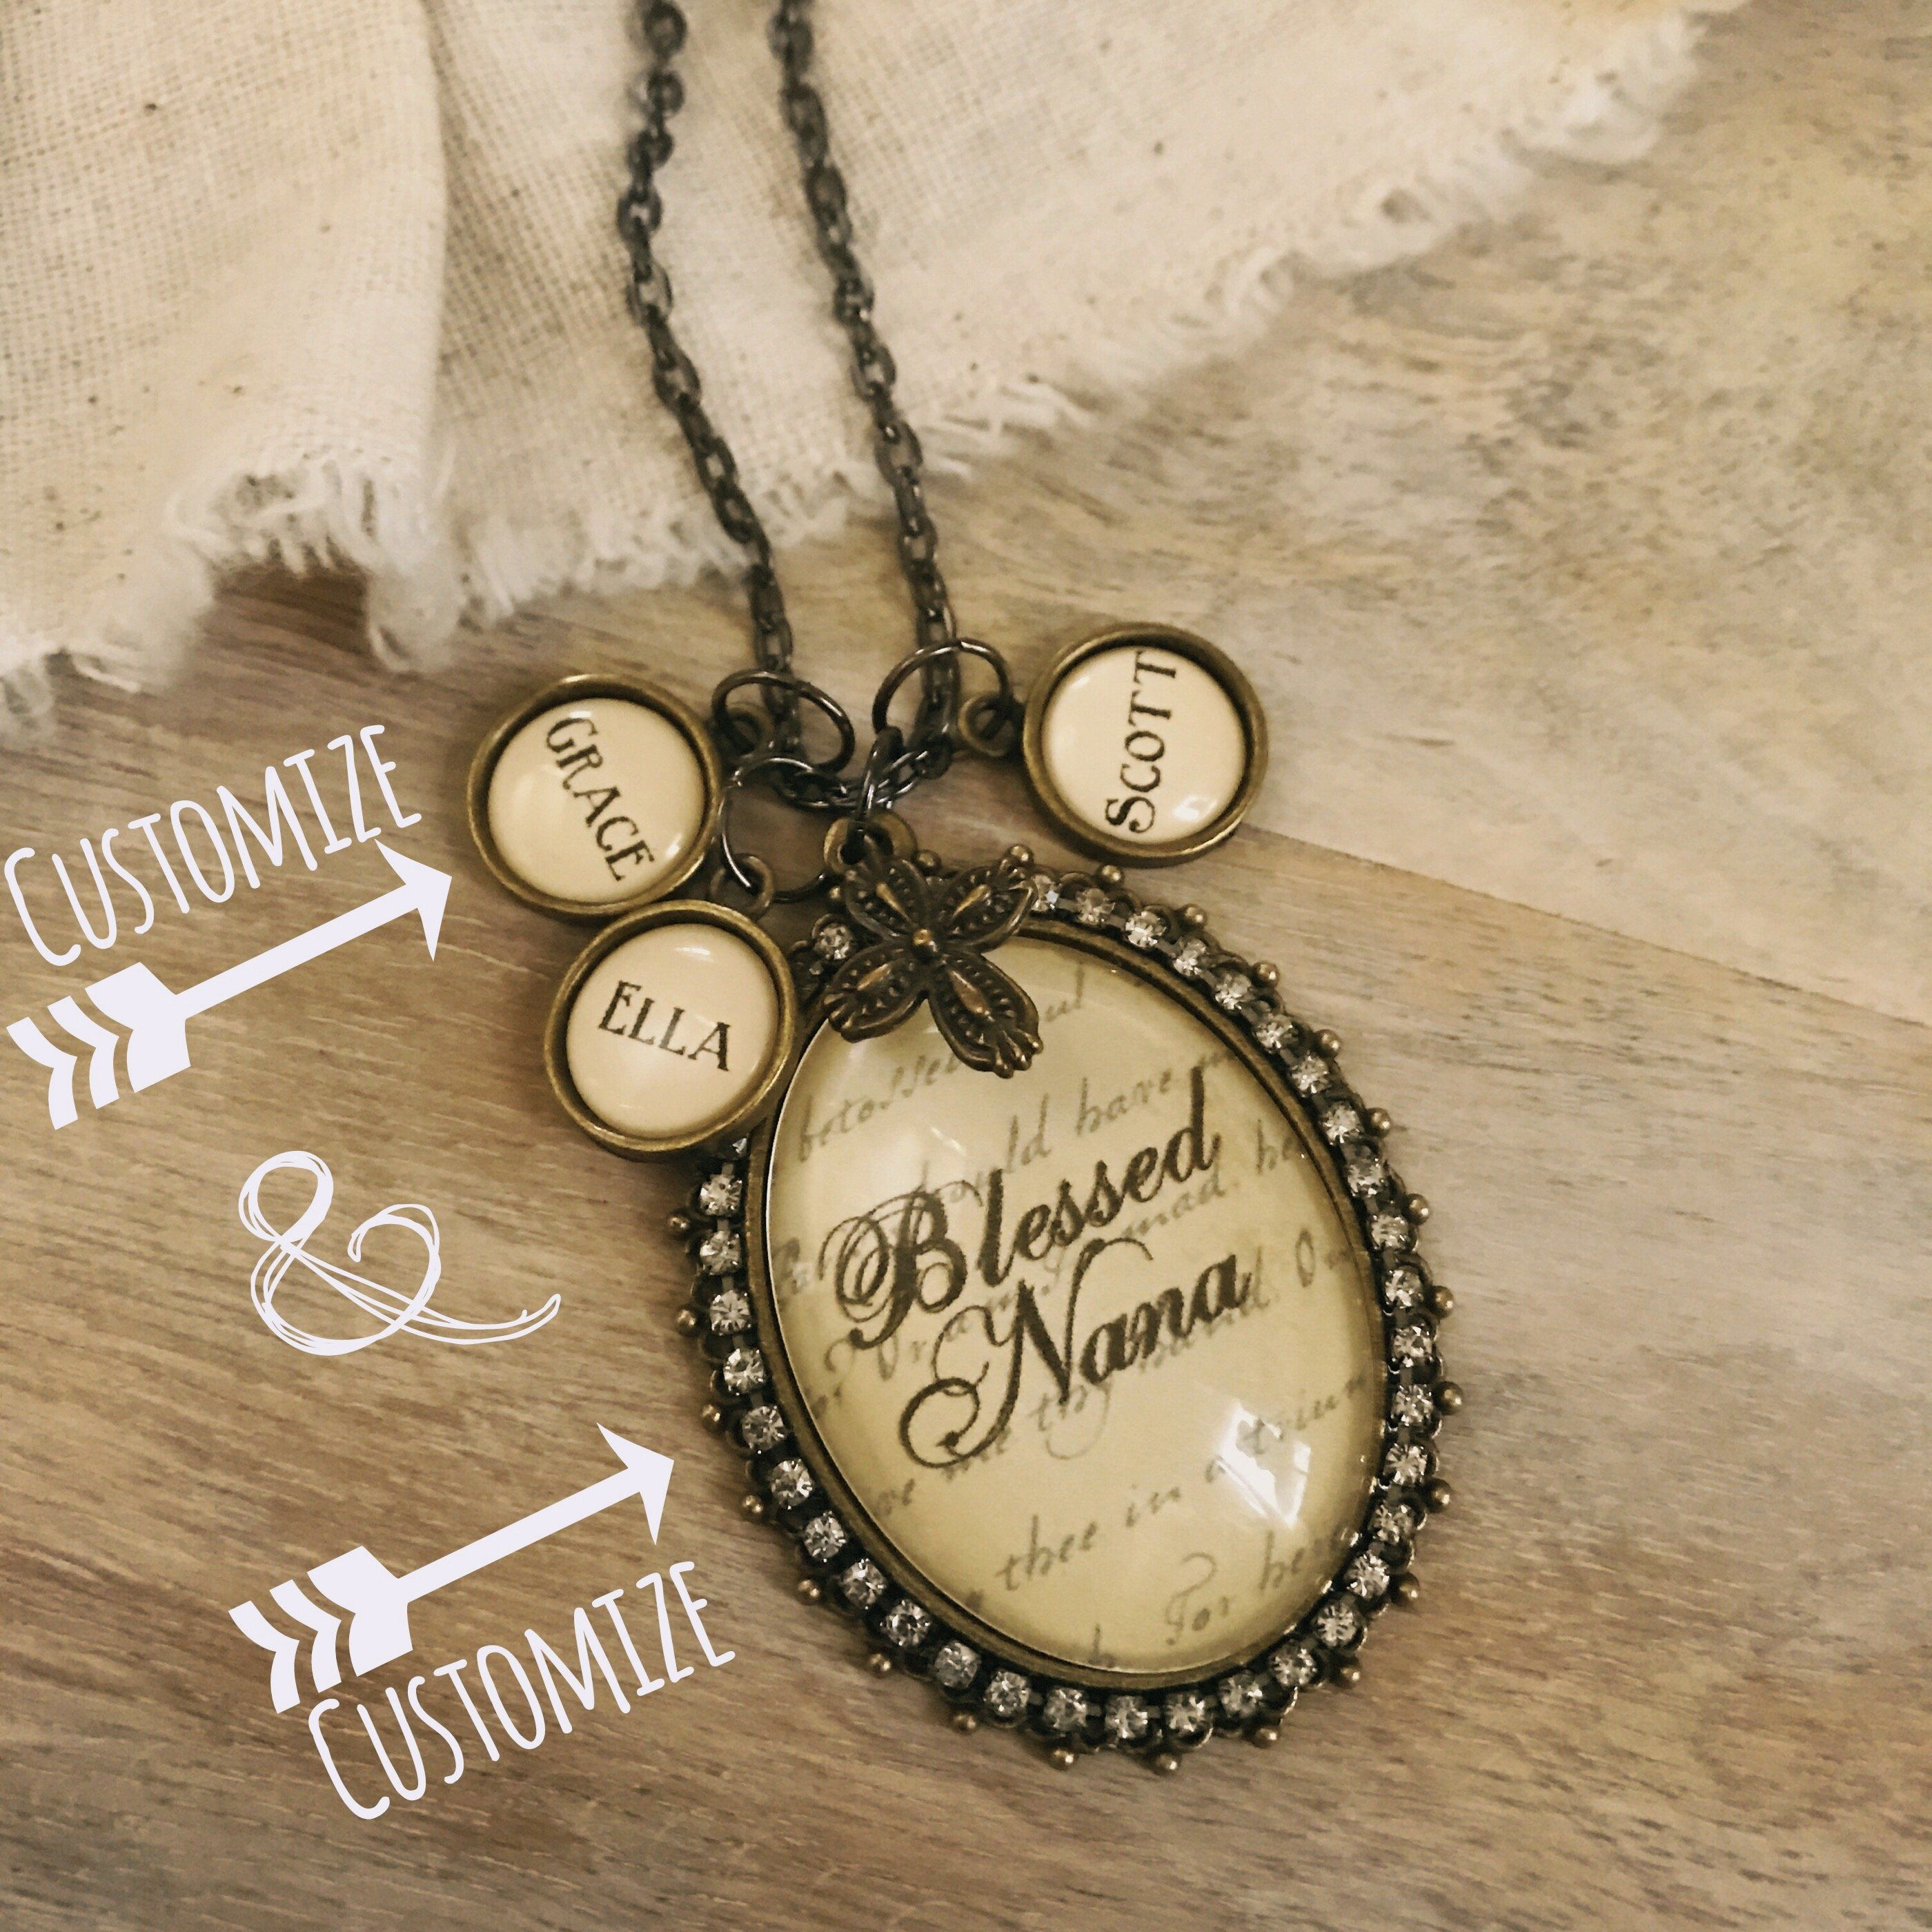 catalog enchanted custom chains key product photo wooden engraved memories